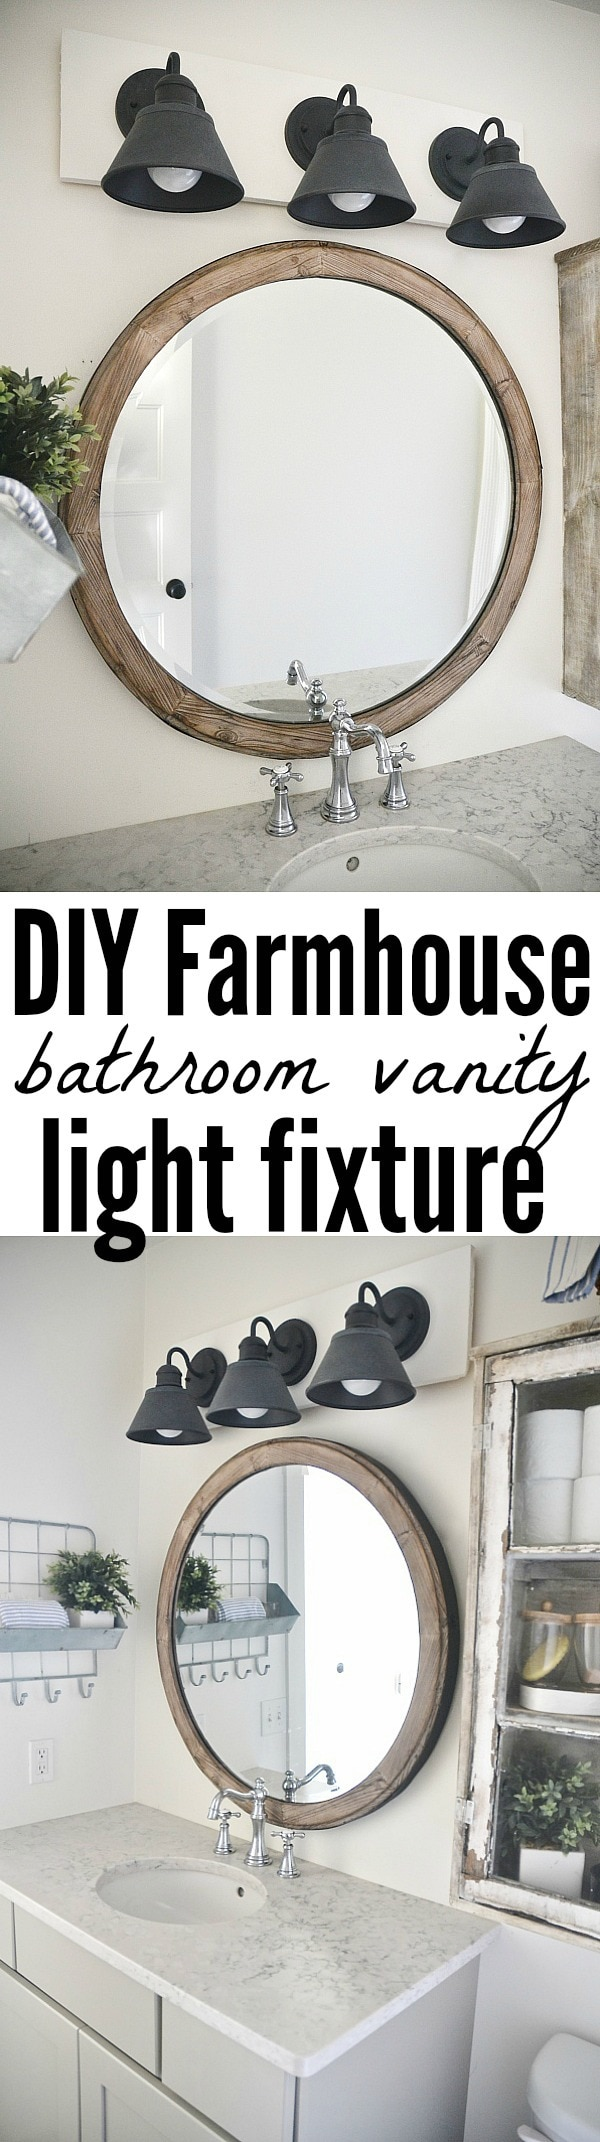 DIY Farmhouse Bathroom Vanity Light Fixture